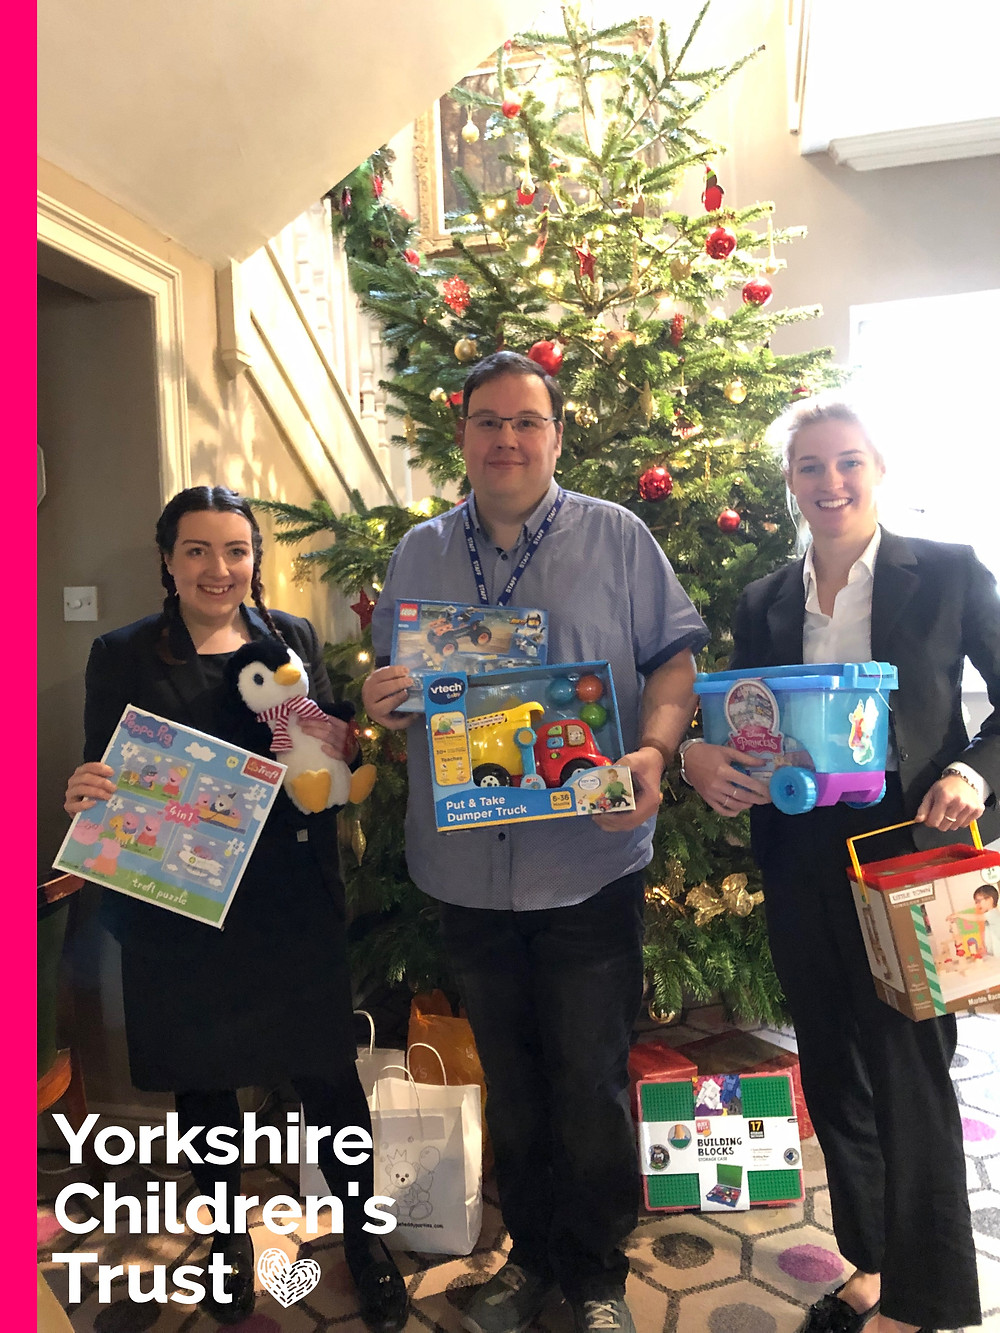 Devonshire Arms at Bolton Abbey have supported Yorkshire Childrens Trust